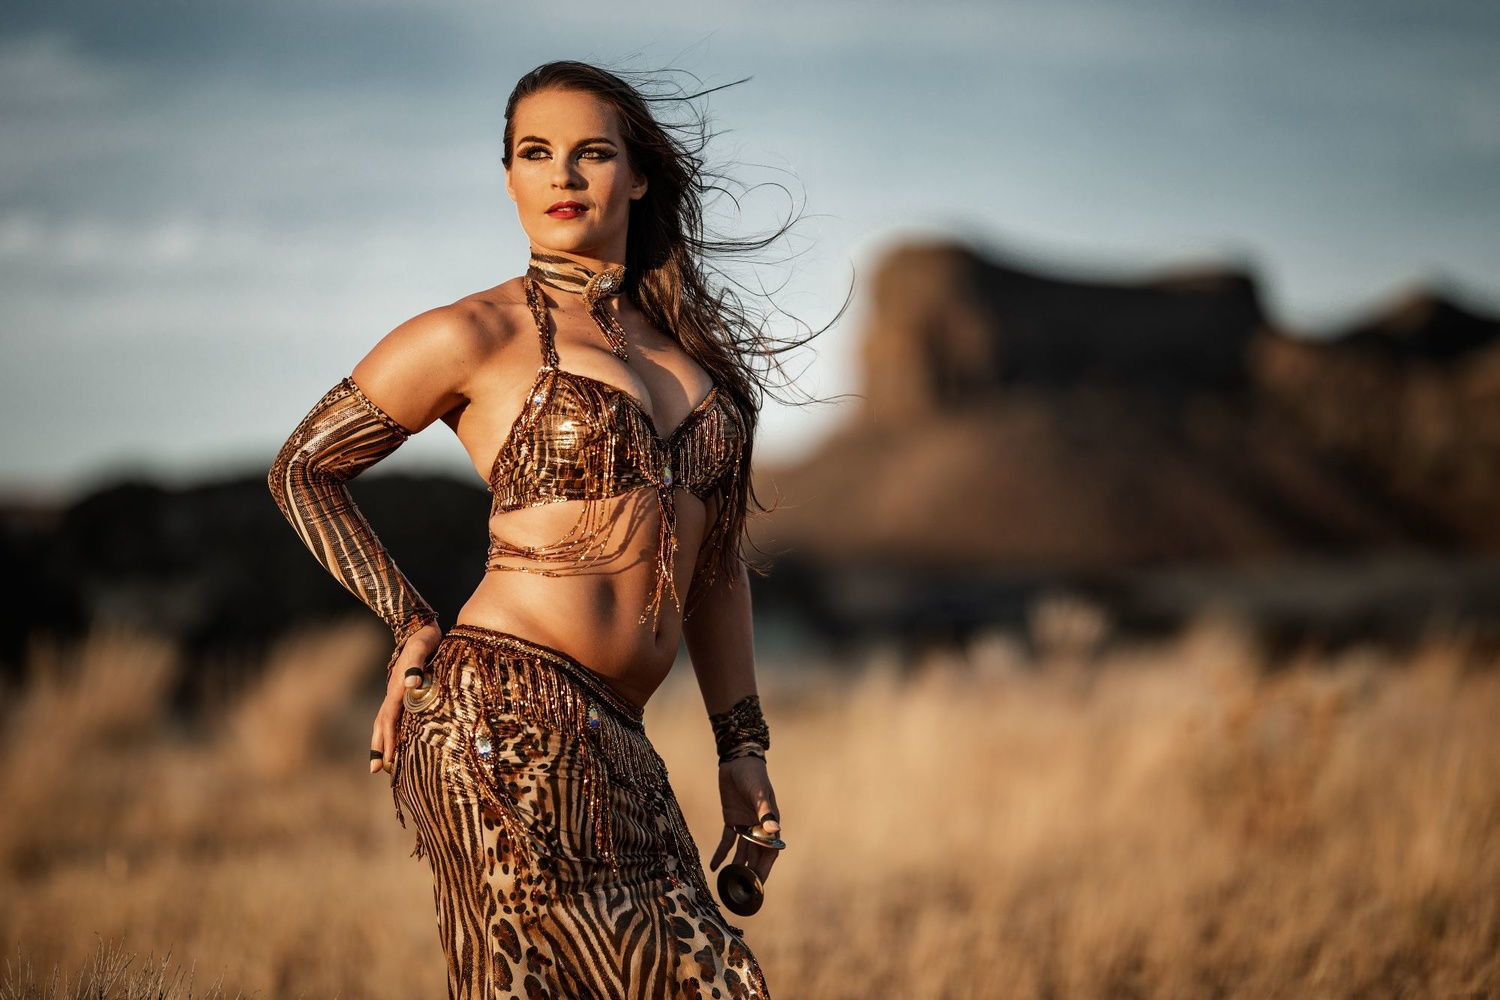 Anyelle in the desert by Jeanie Lewis